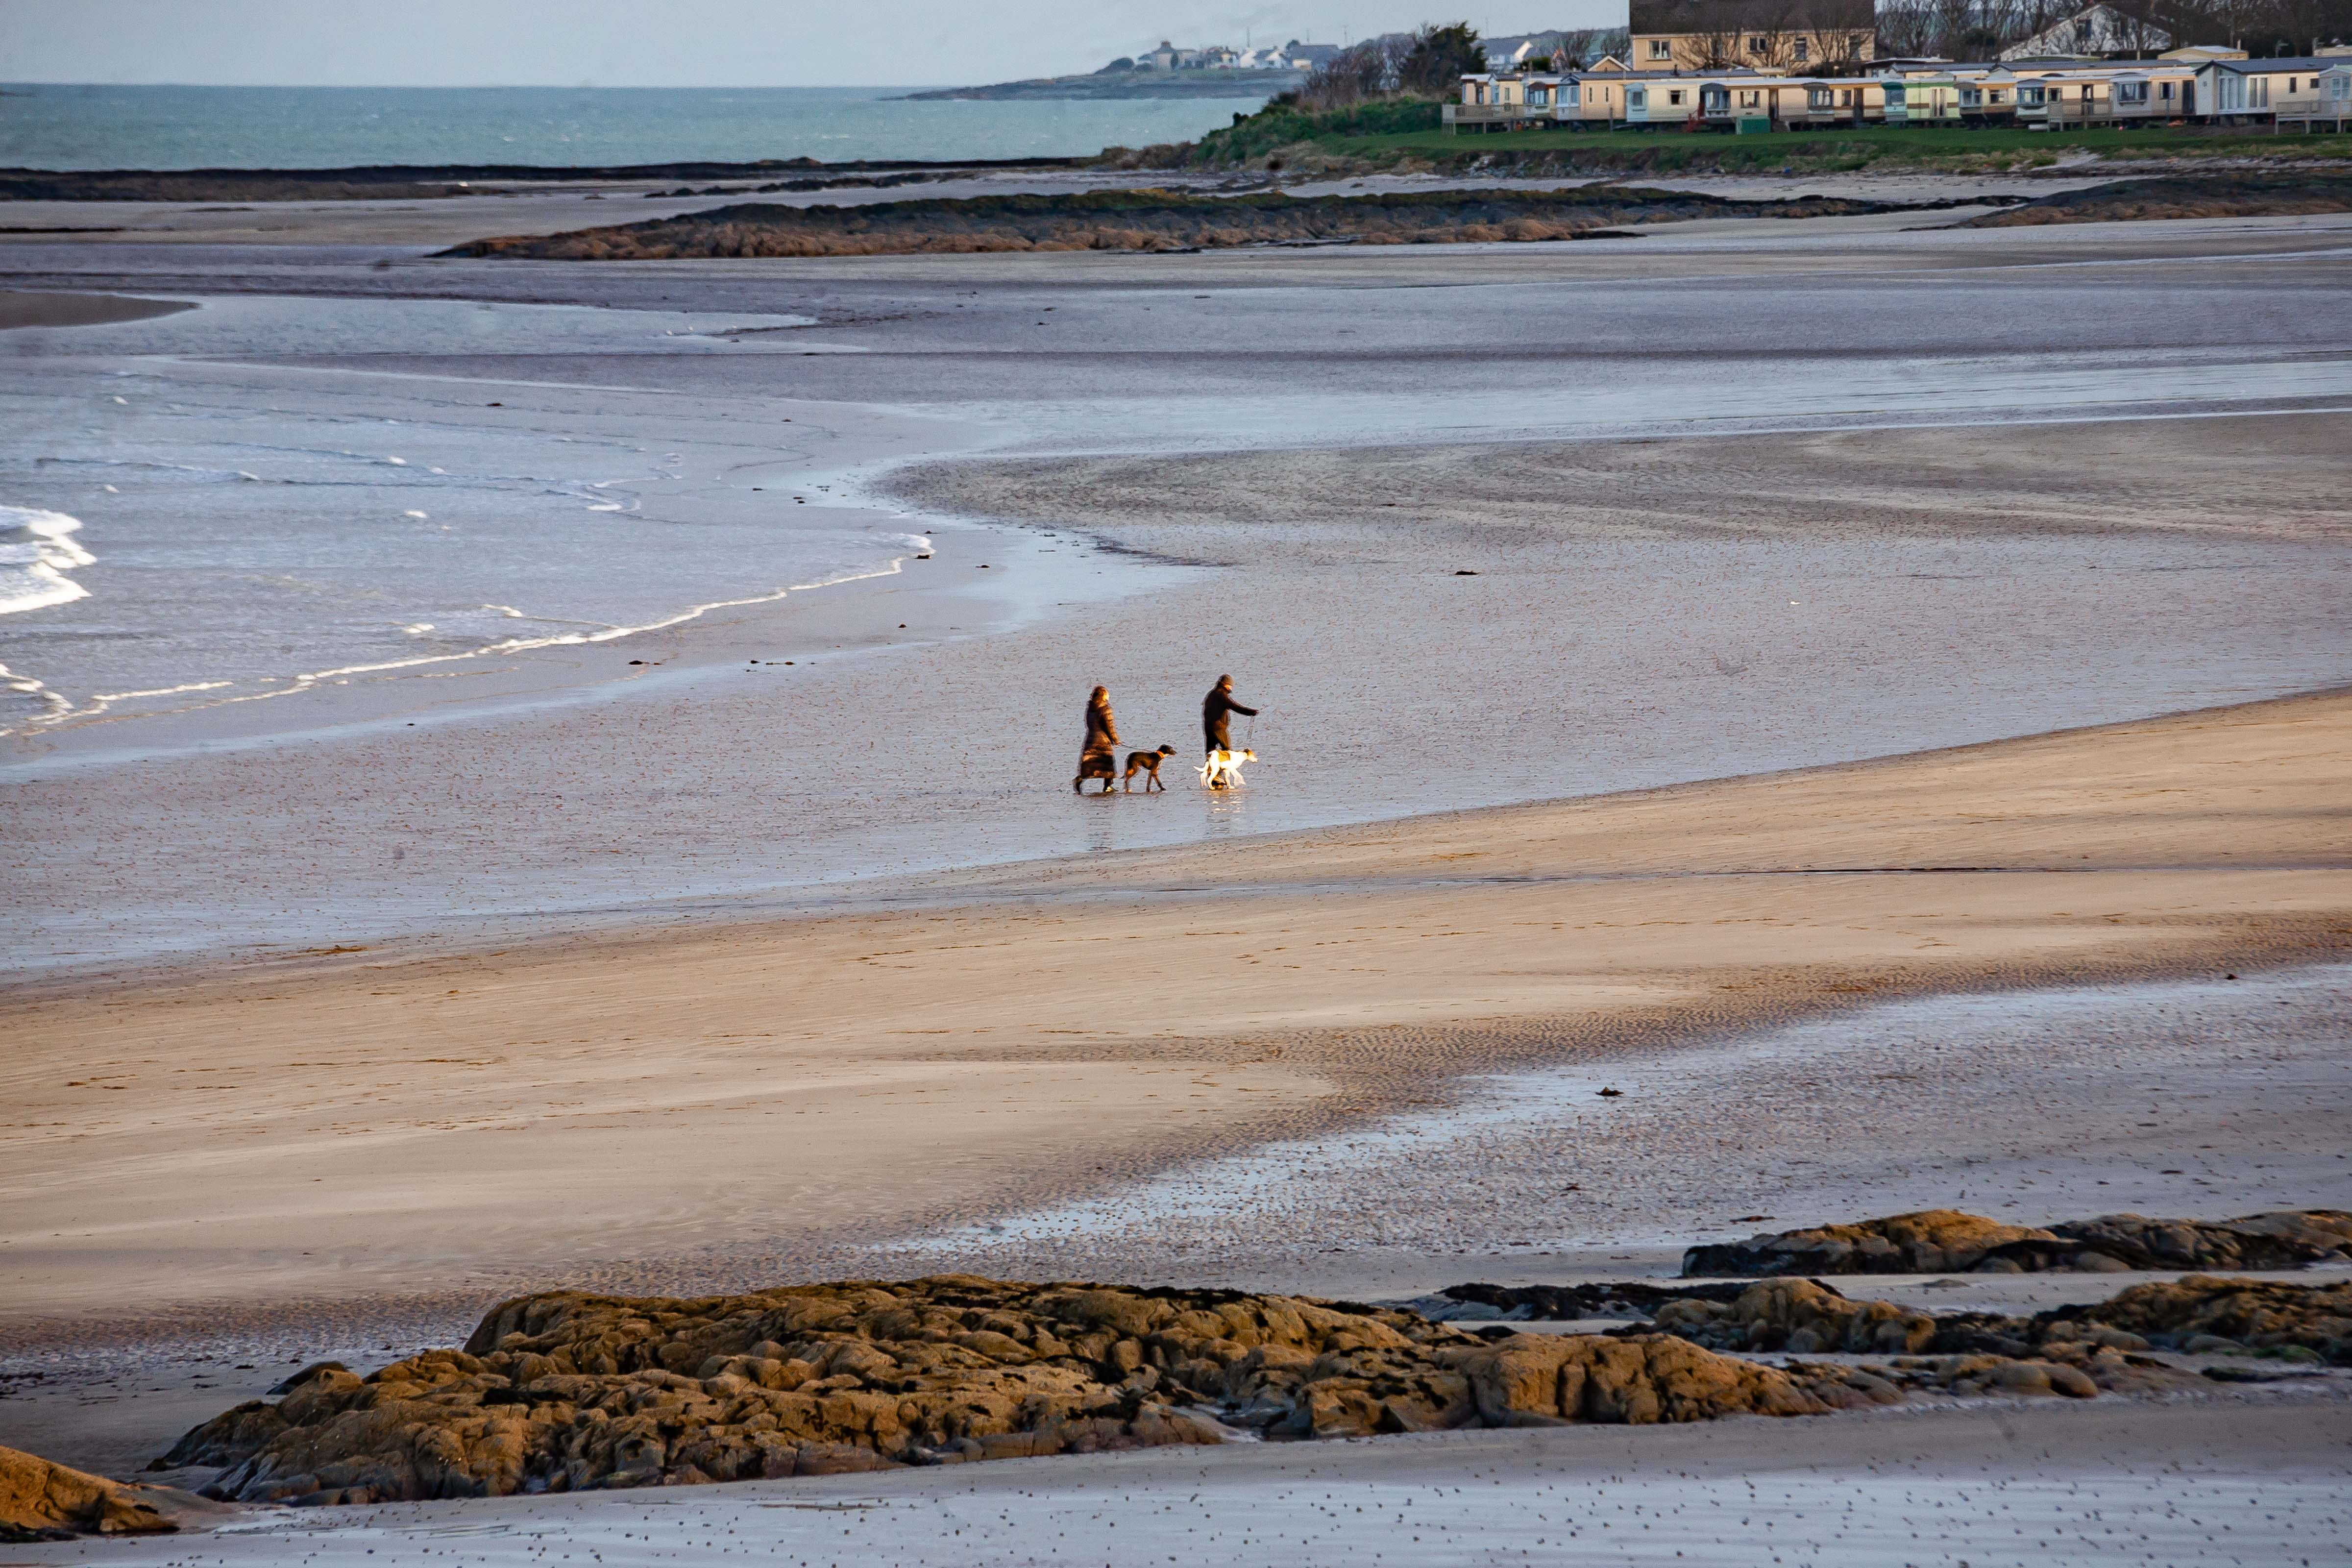 N Ireland, Ards Prov, Walking Dogs Beach, 2009, IMG 9971